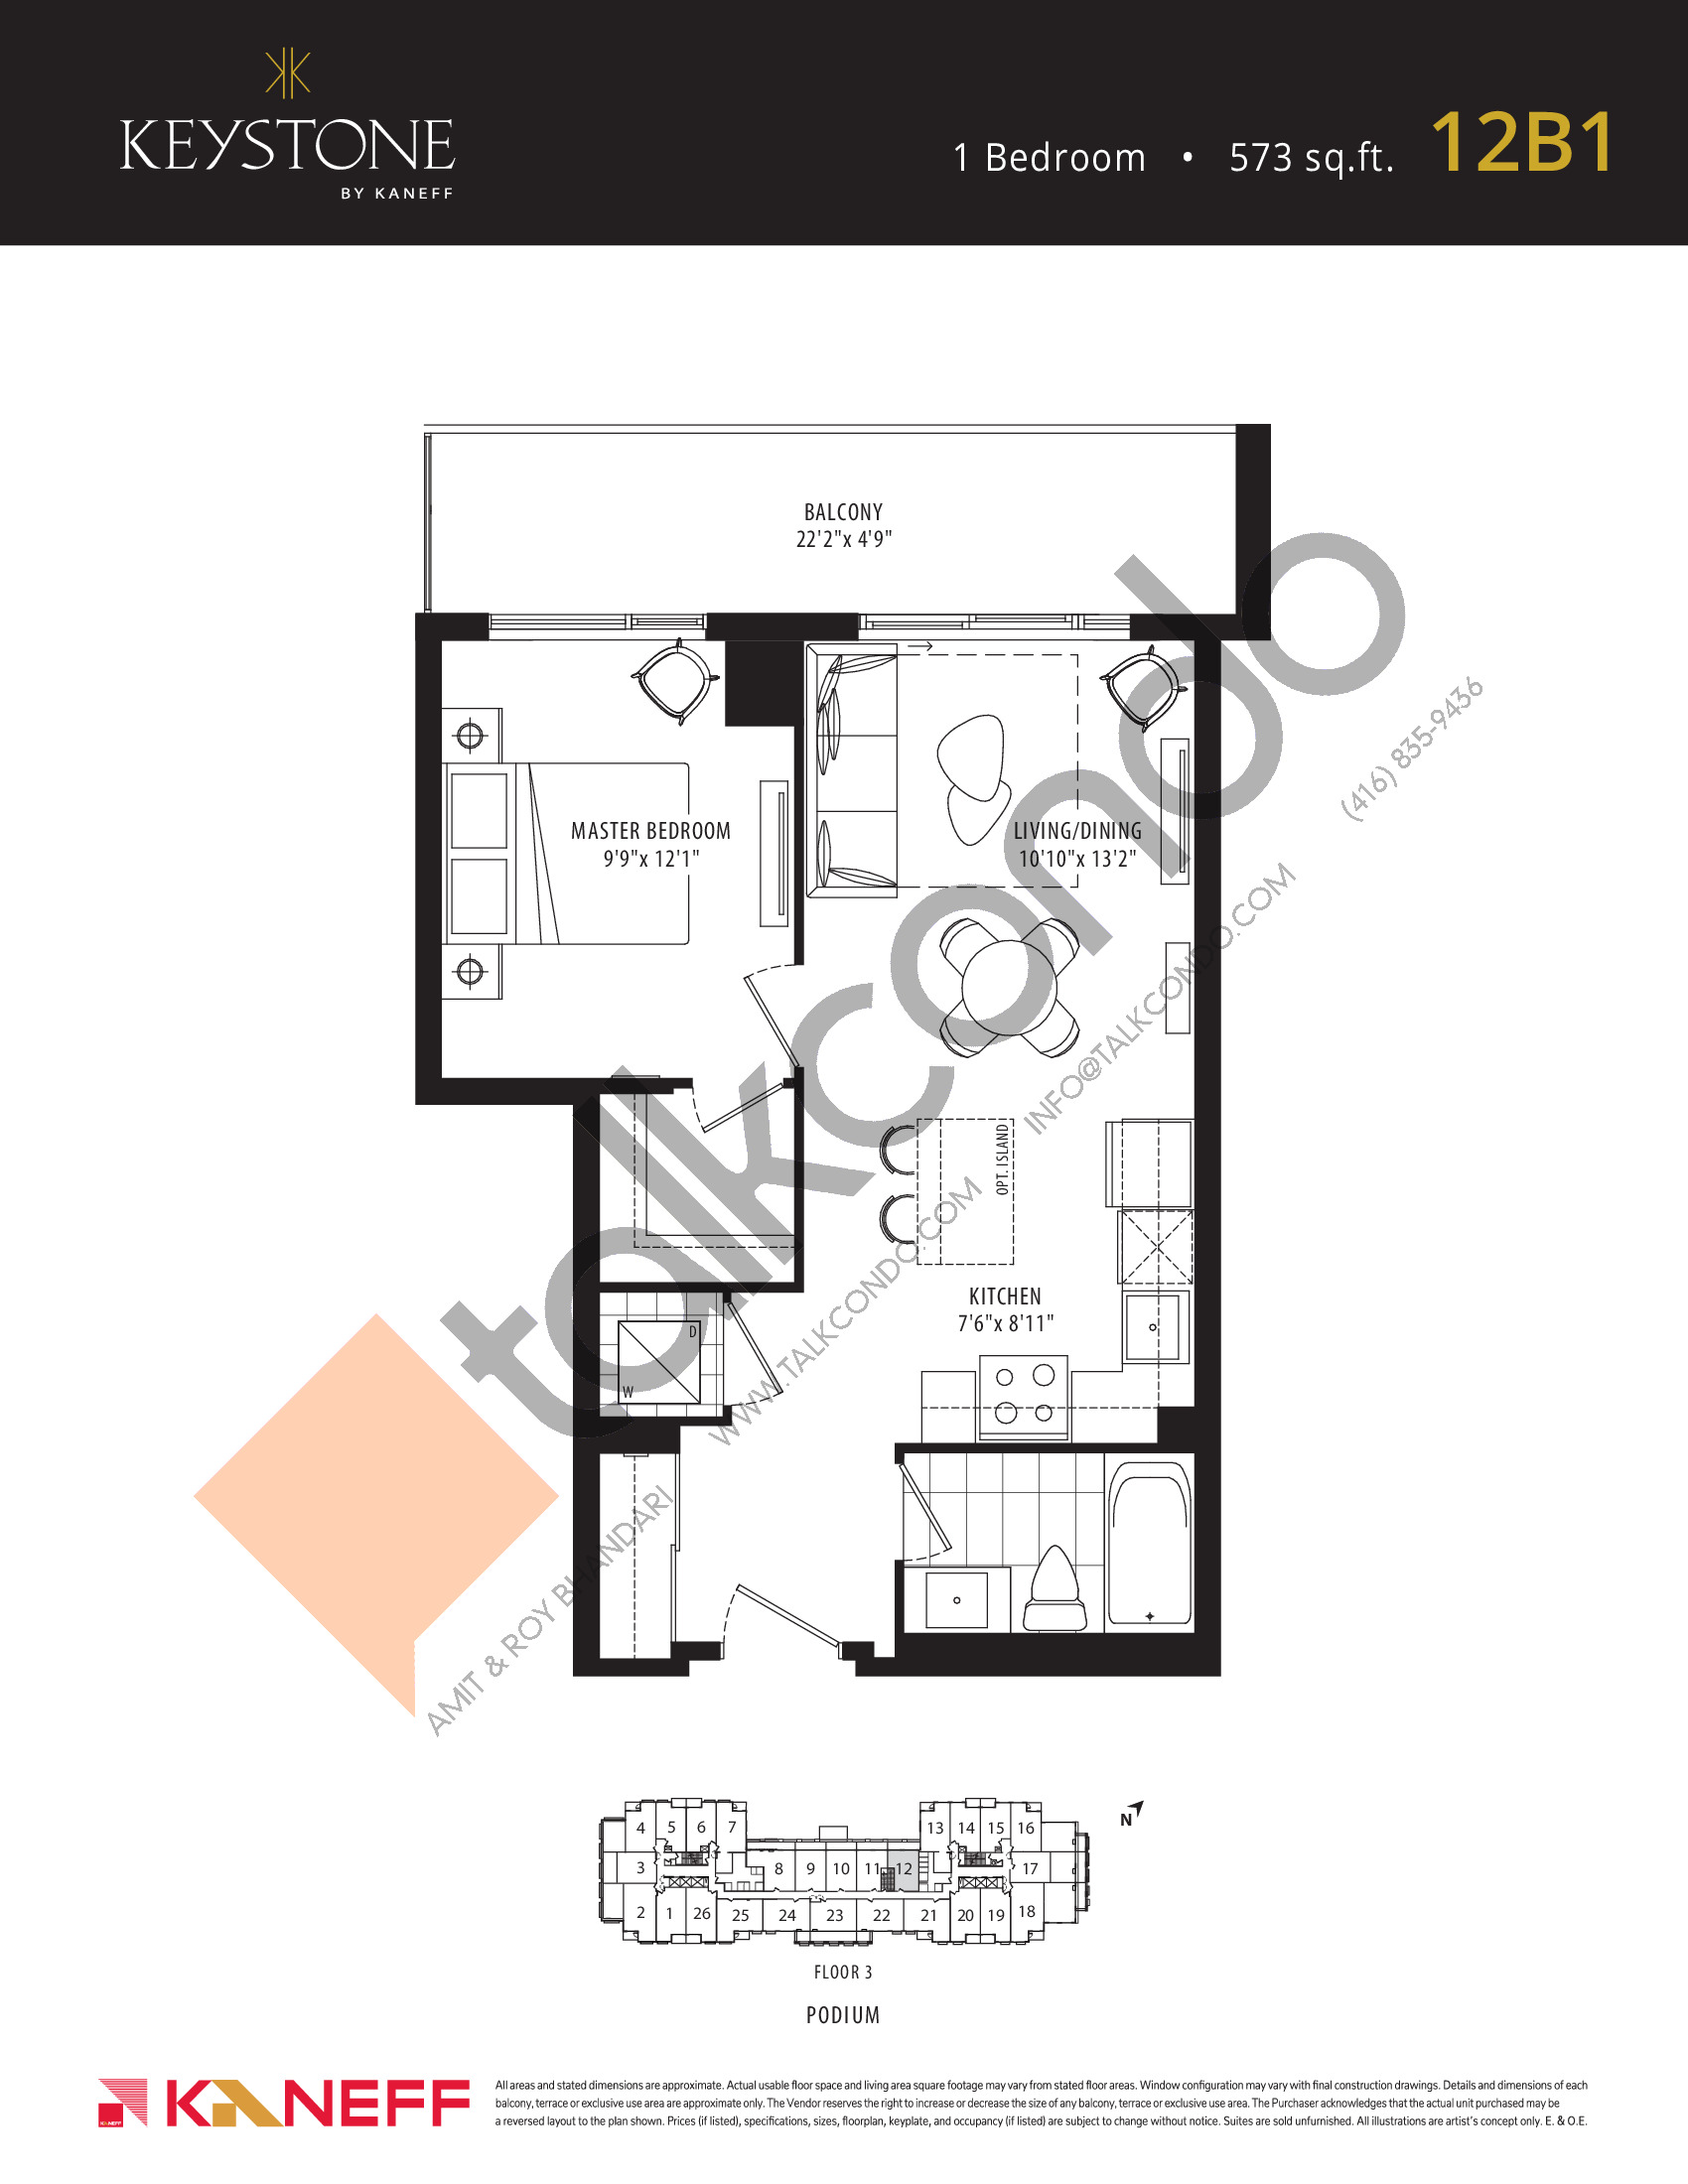 12B1 Floor Plan at Keystone Condos Phase 2 - 573 sq.ft